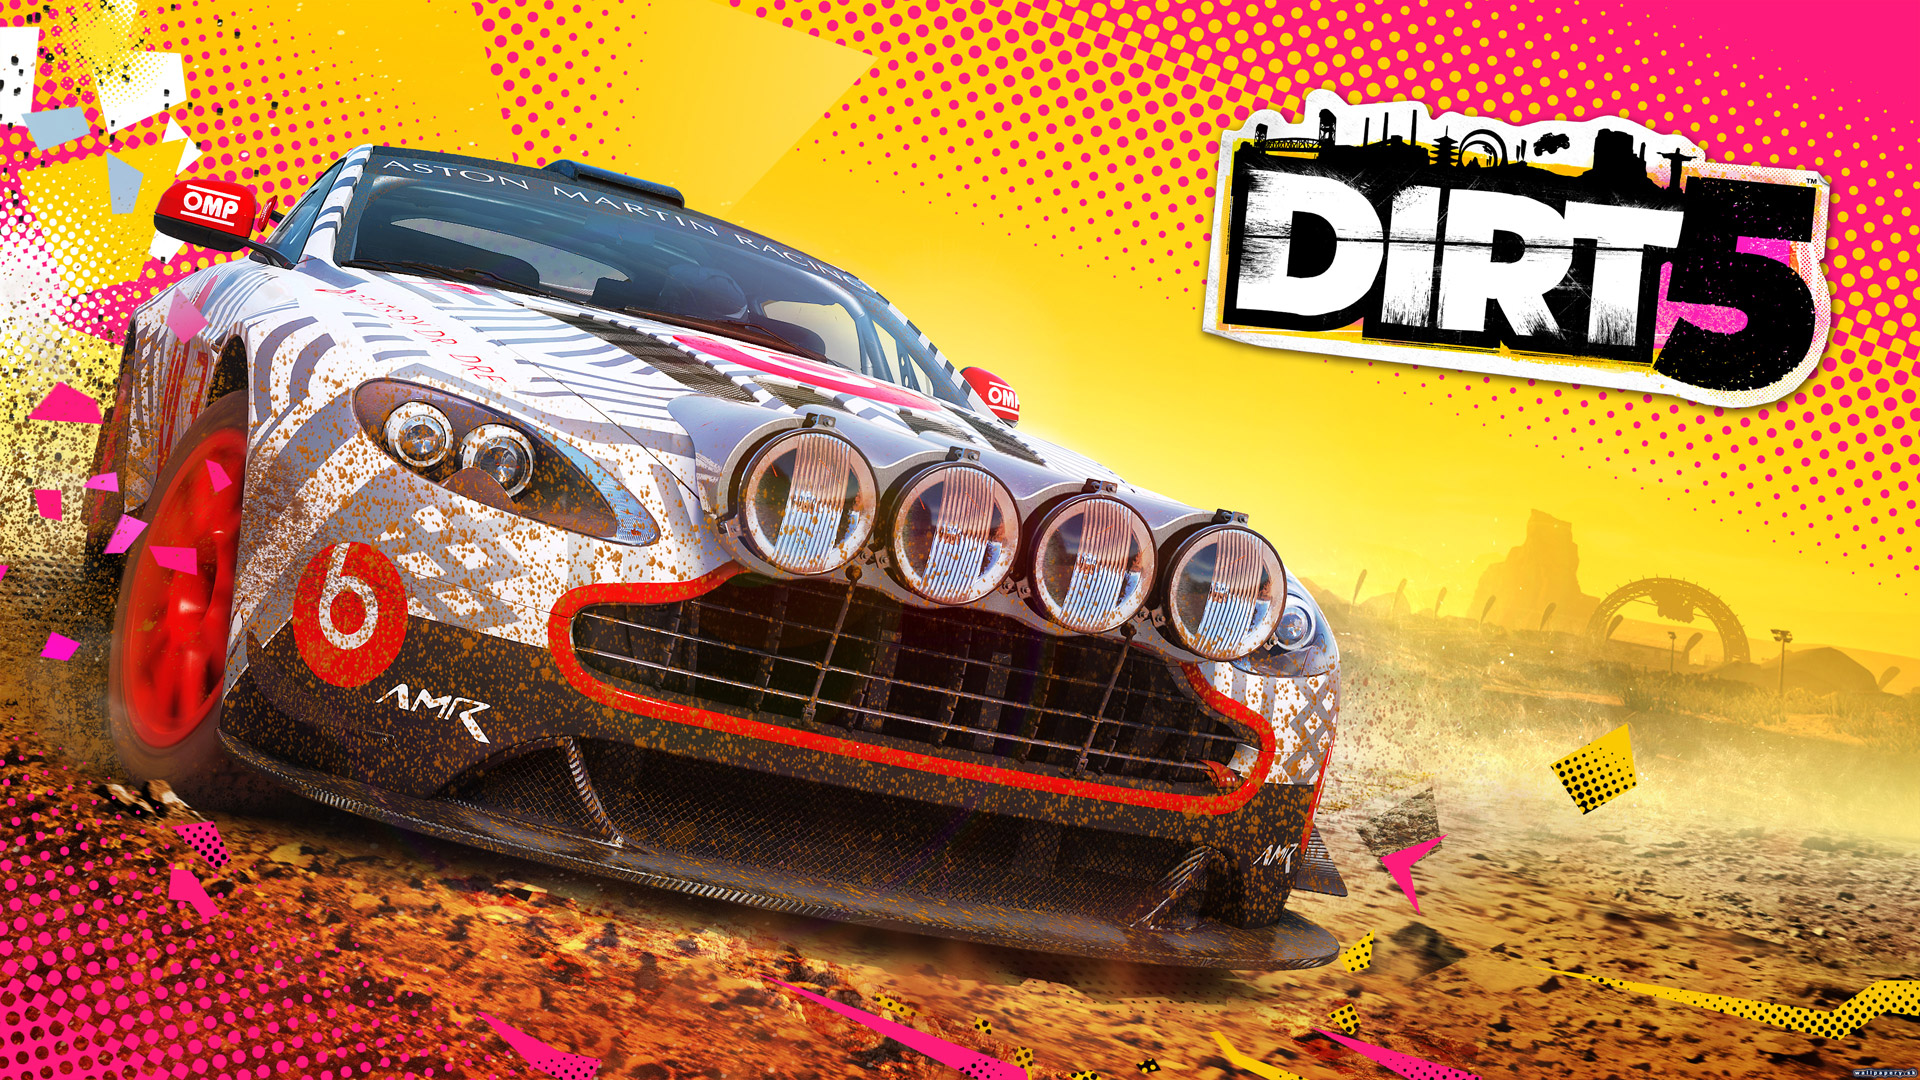 Dirt 5 Wallpaper in 1920x1080